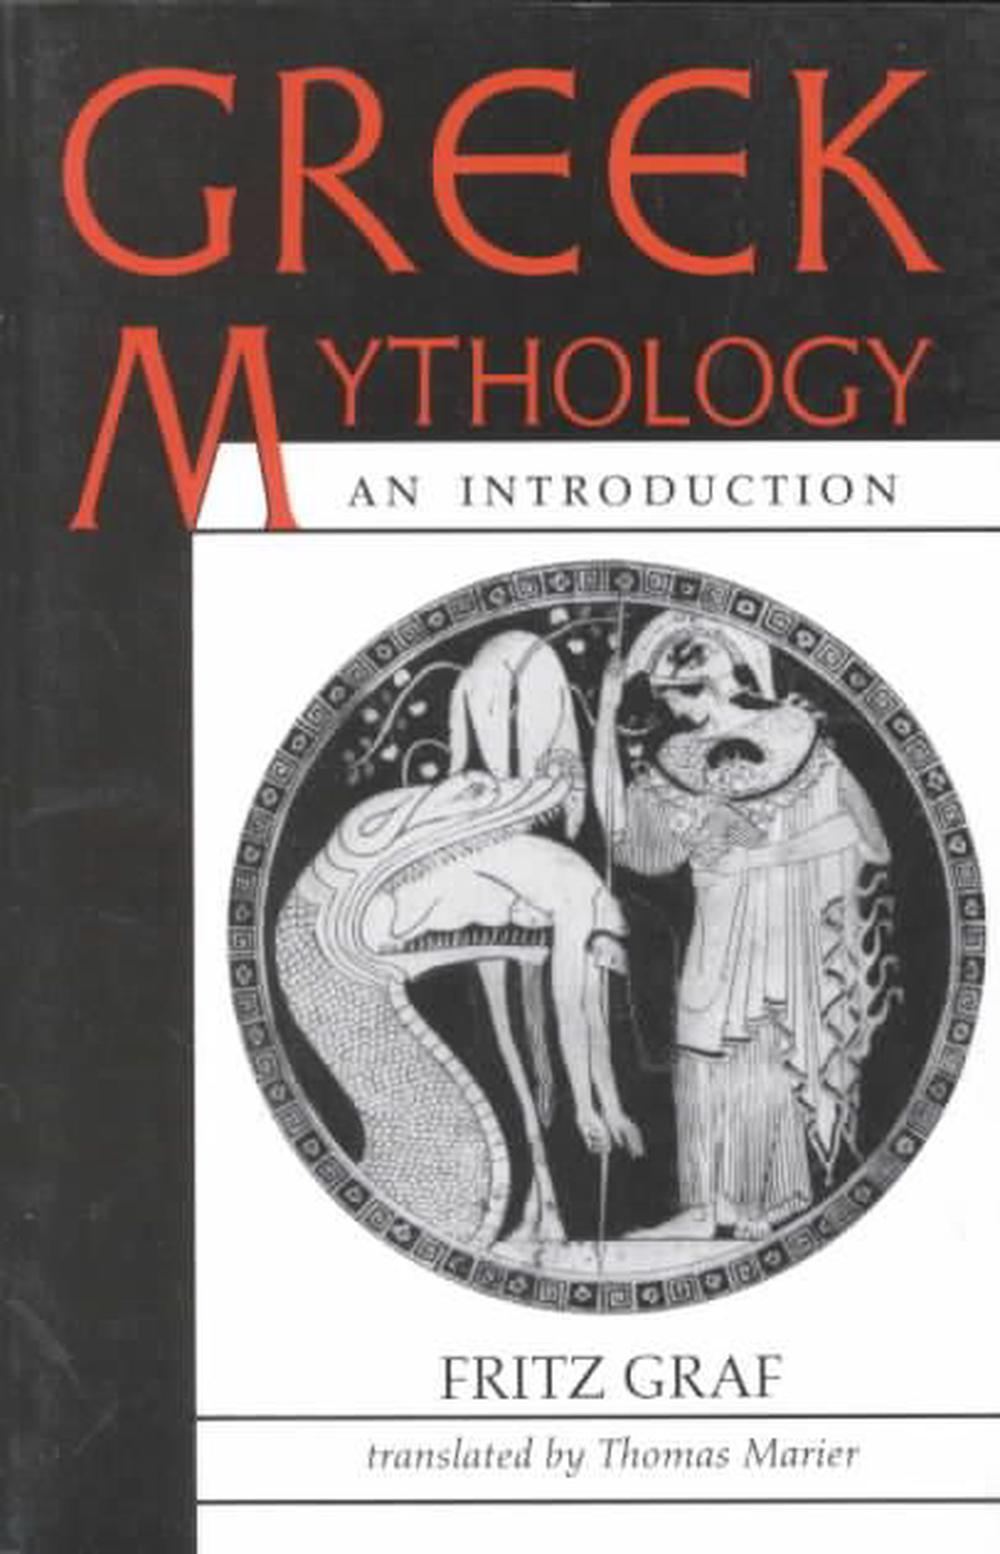 an introduction to the greek and medieval culture and mythology in society The mythology the art democracy the debates  greek salad thinkstock thinkstock block o' feta  culture like us on facebook.